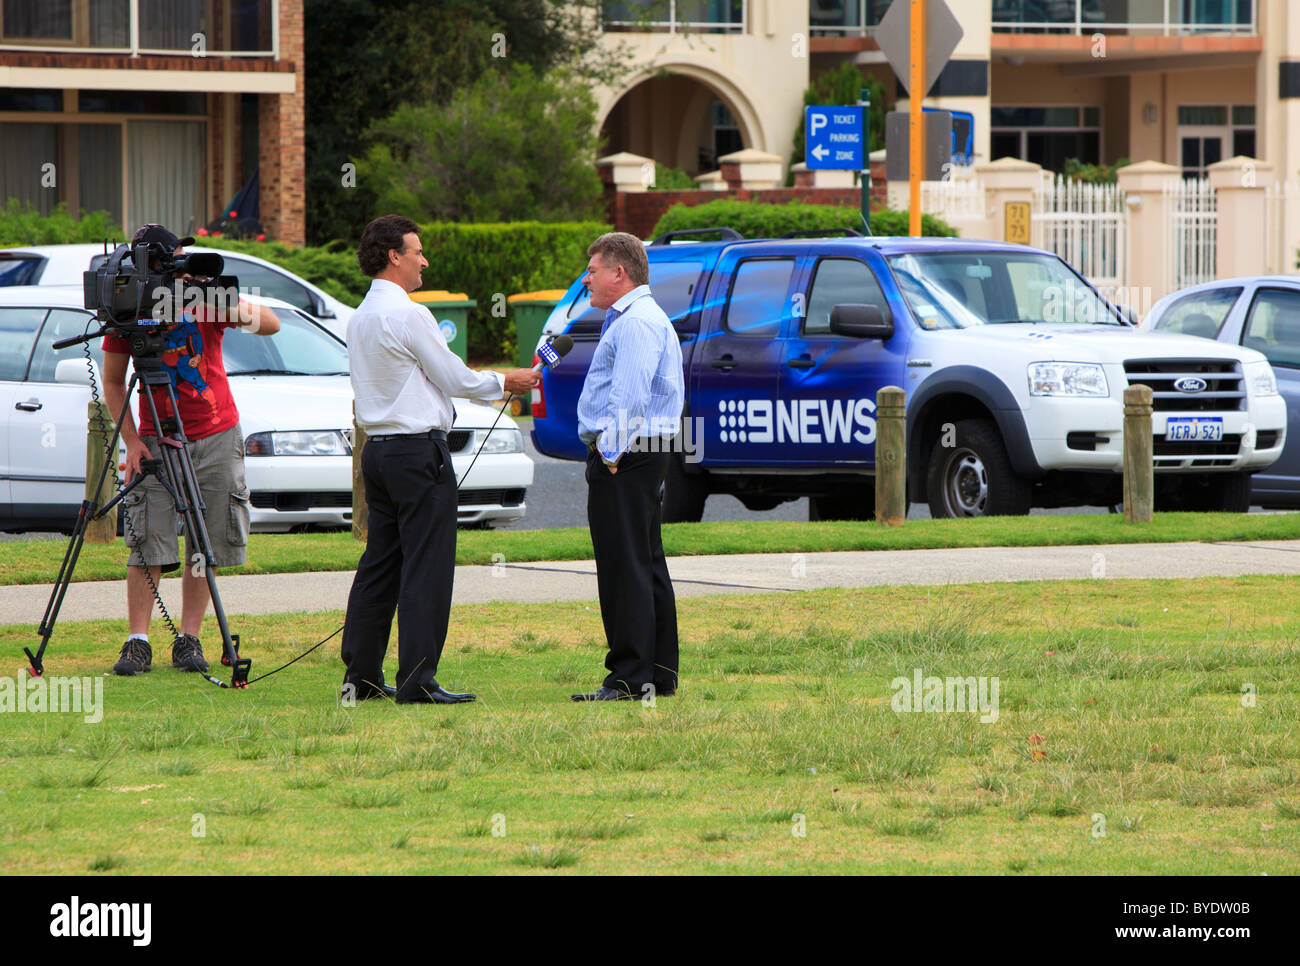 Channel 9 News interview being filmed with the 9News car in the